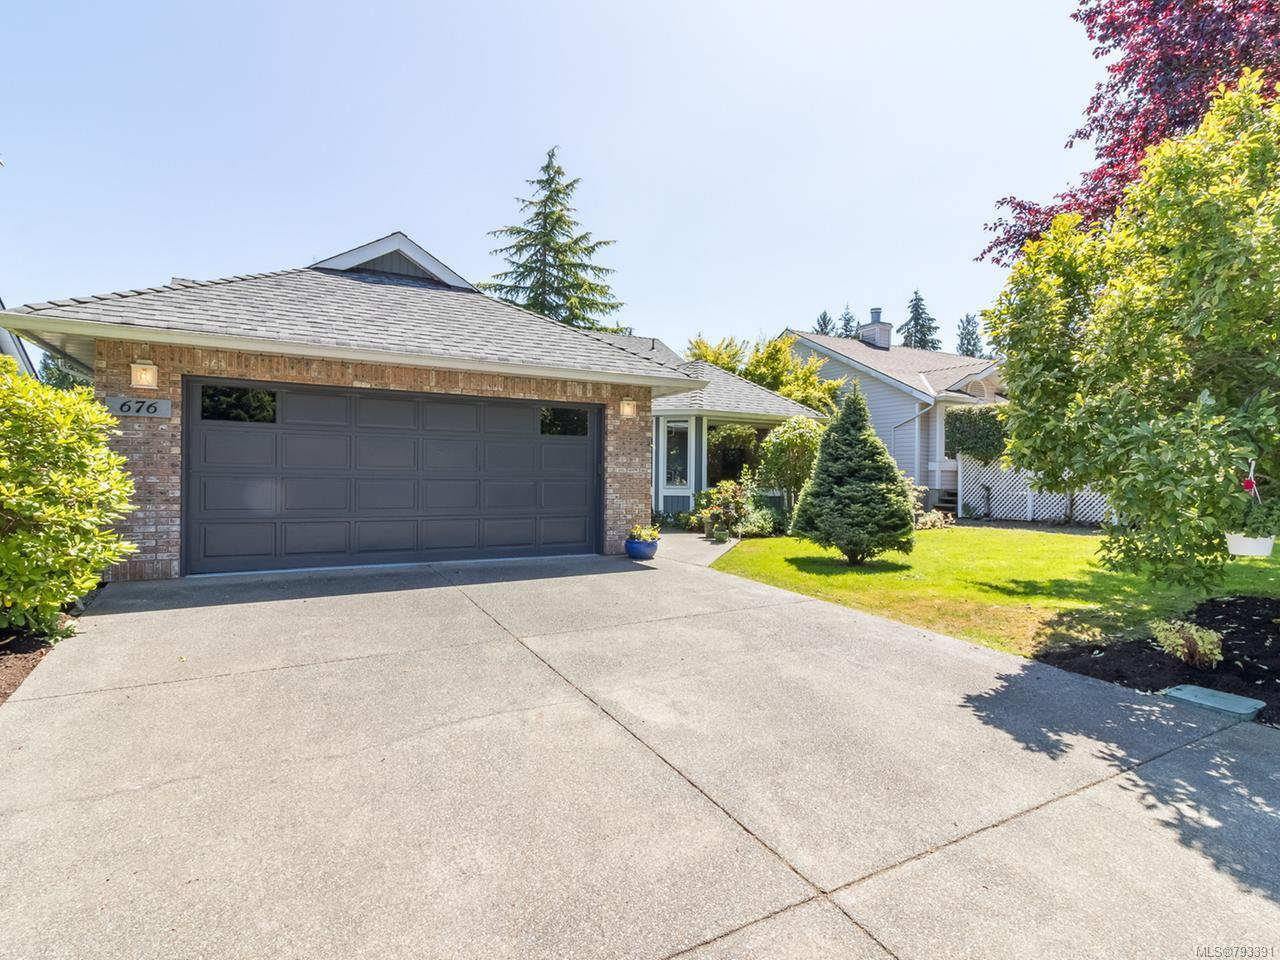 Main Photo: 676 Pine Ridge Dr in COBBLE HILL: ML Cobble Hill House for sale (Malahat & Area)  : MLS®# 793391